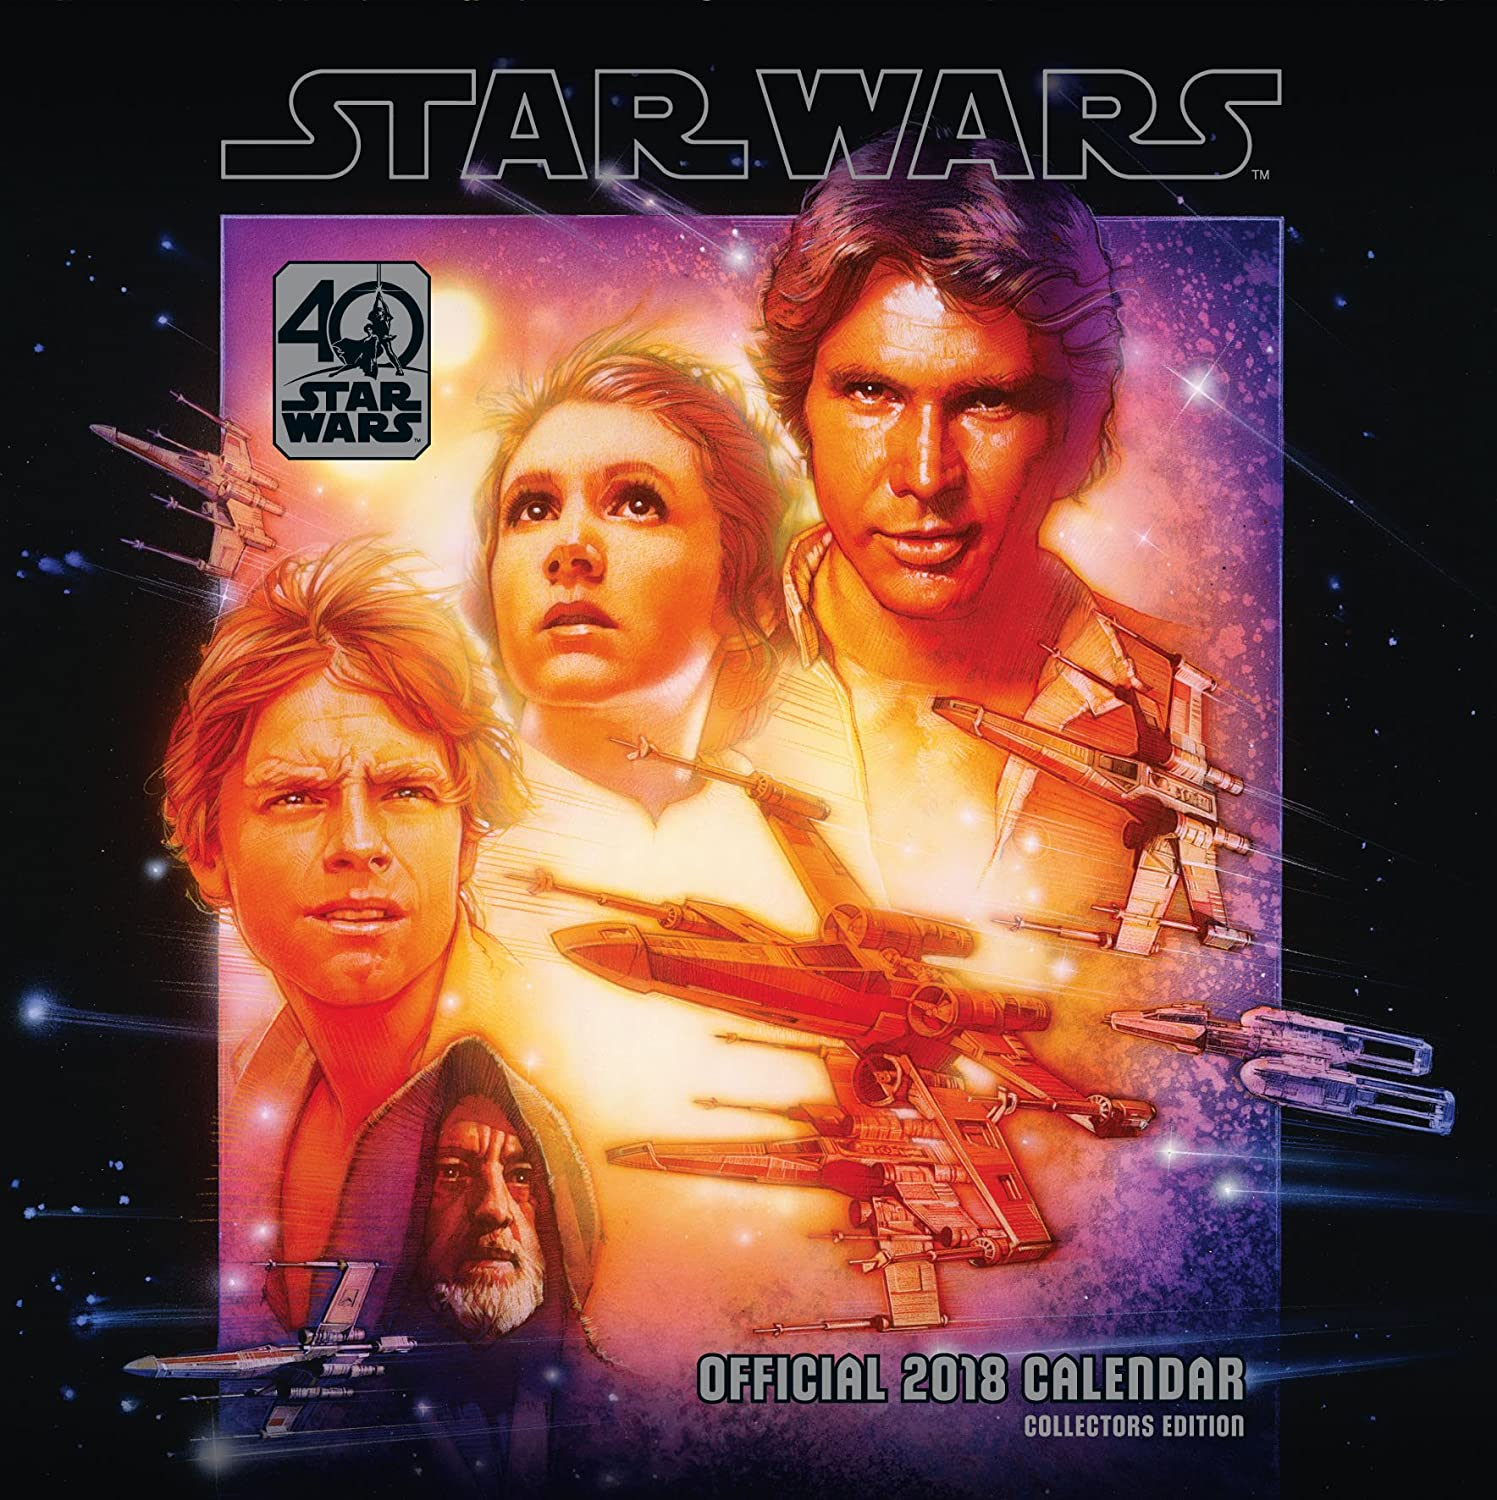 Star Wars 40th Anniversary Official 2018 Calendar - Square Wall Format (Calendar 2018) Danilo Promotions Limited 1785493884 Film TV & Radio